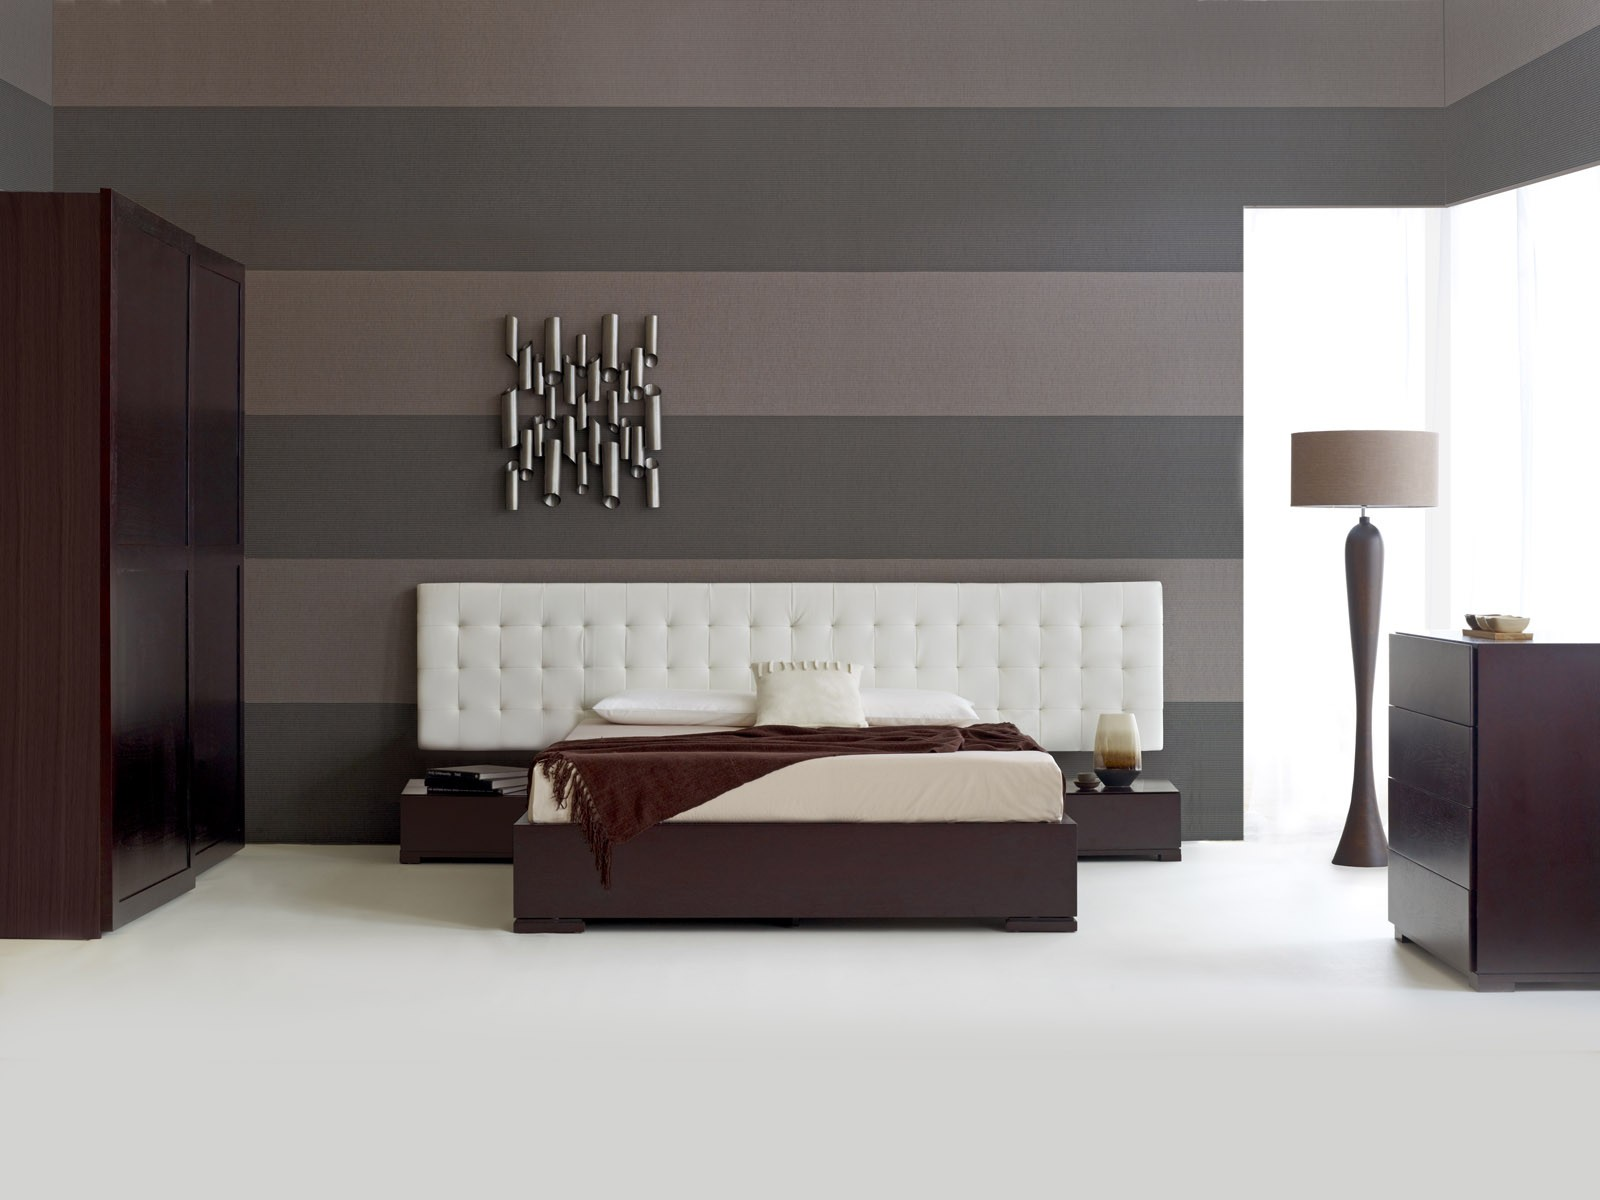 Bed Headboards Decoration Designs Guide